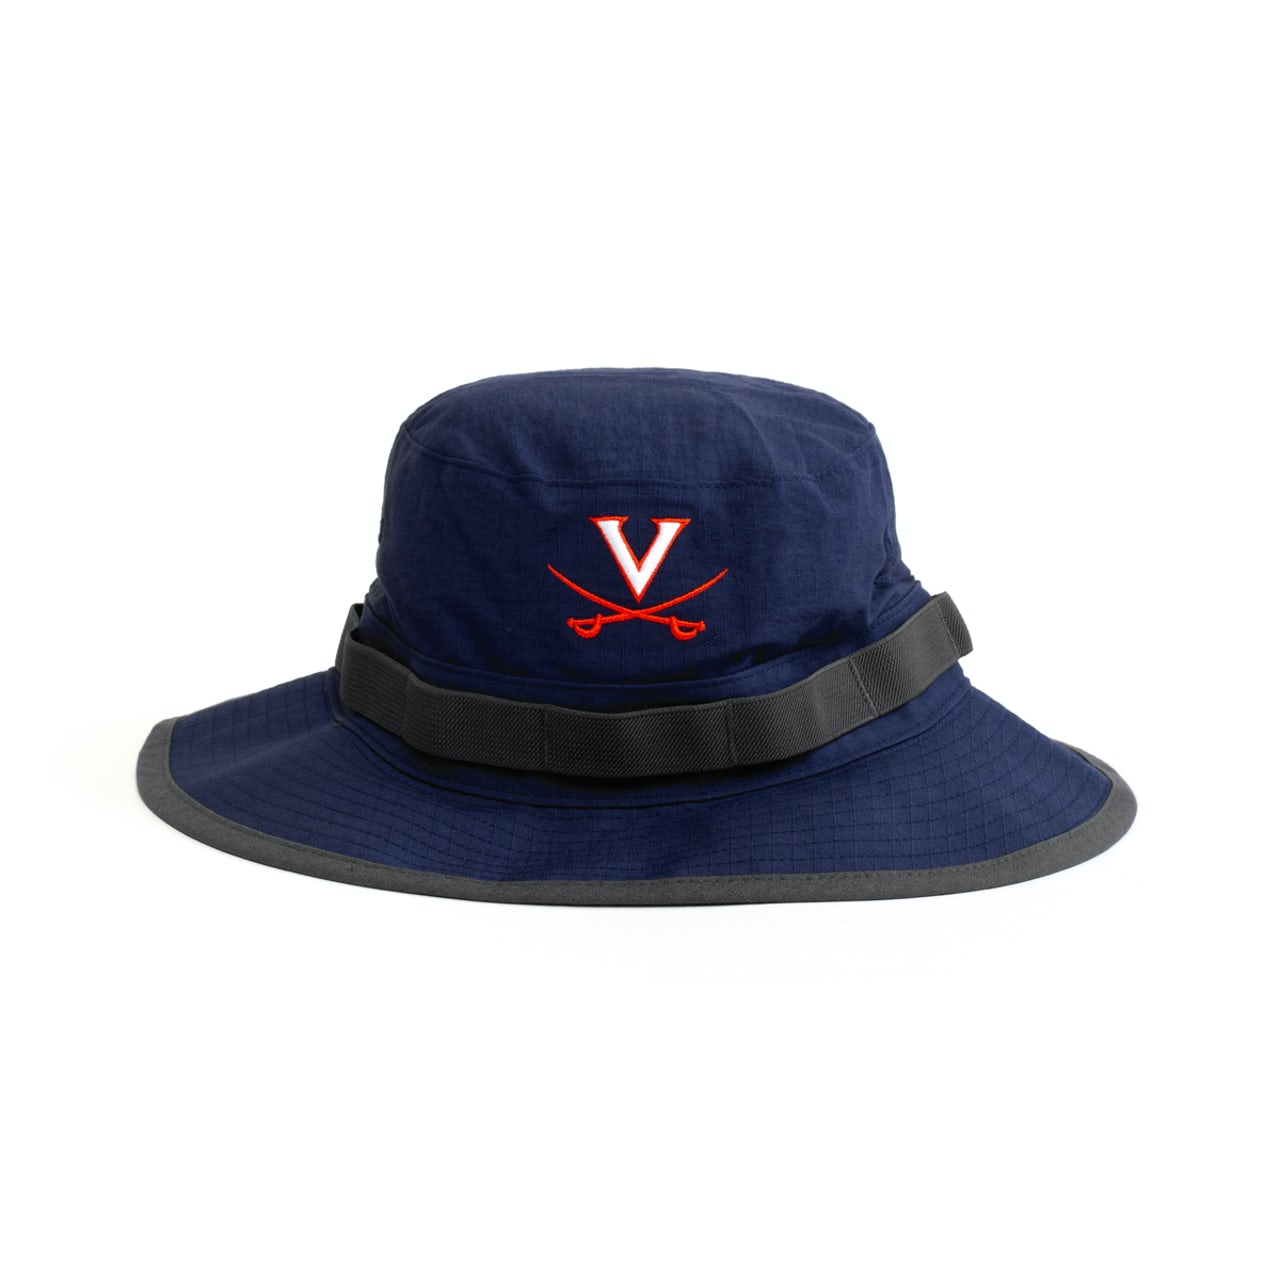 11c72edbde8ff UVA Athletics. University of Virginia Nike Dri-FIT Bucket Hat